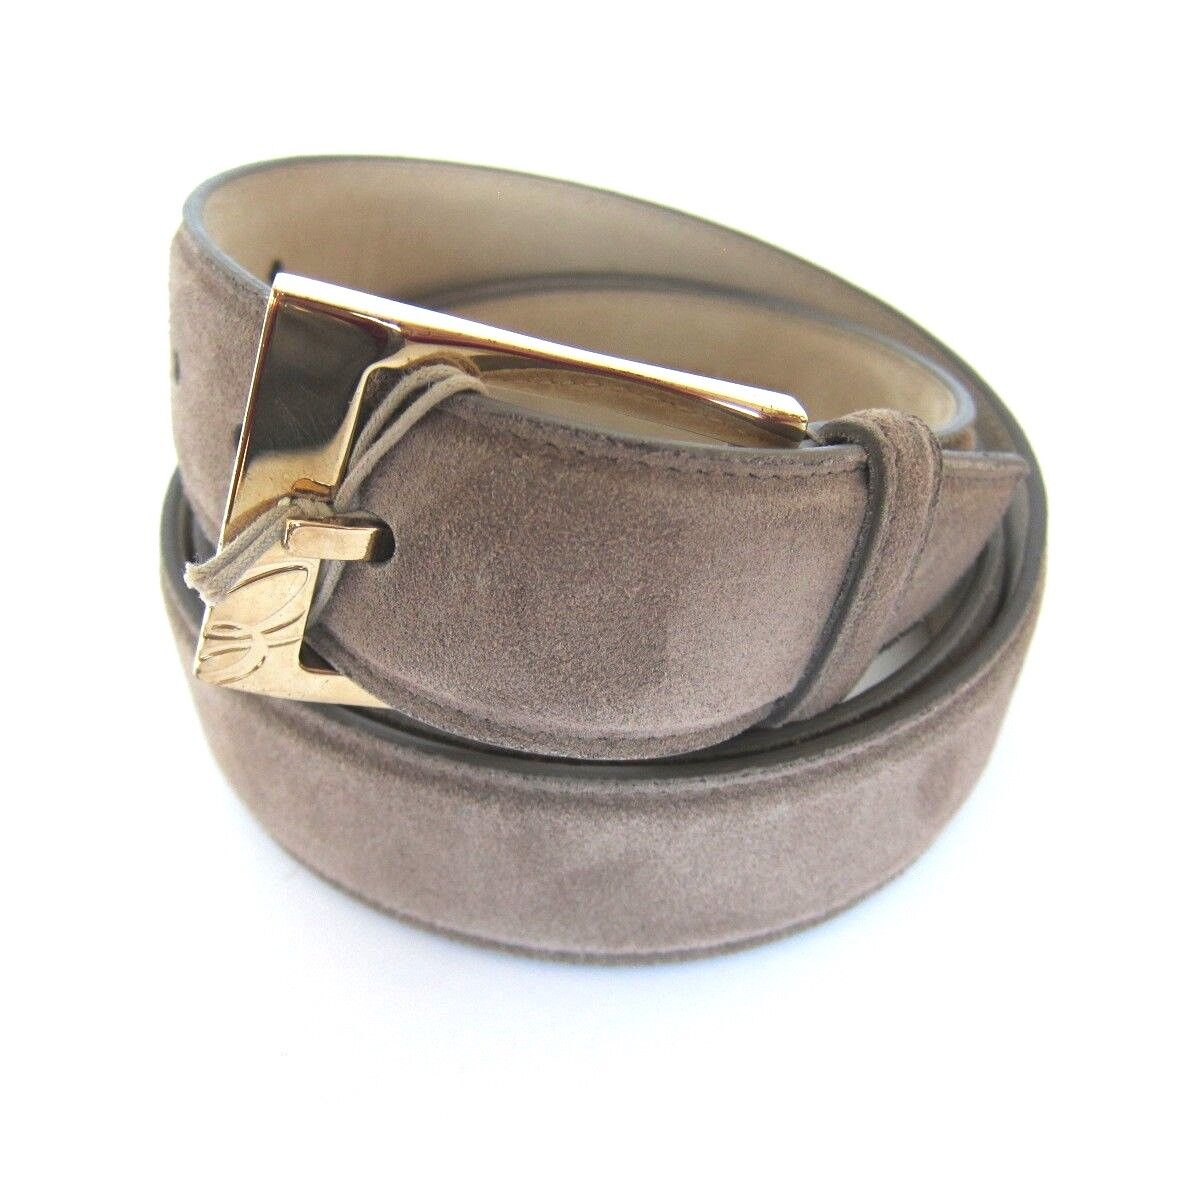 B-421074 NEW BRIONI Taupe Suede Solid Brass Gold Buckle Size 42 to 40